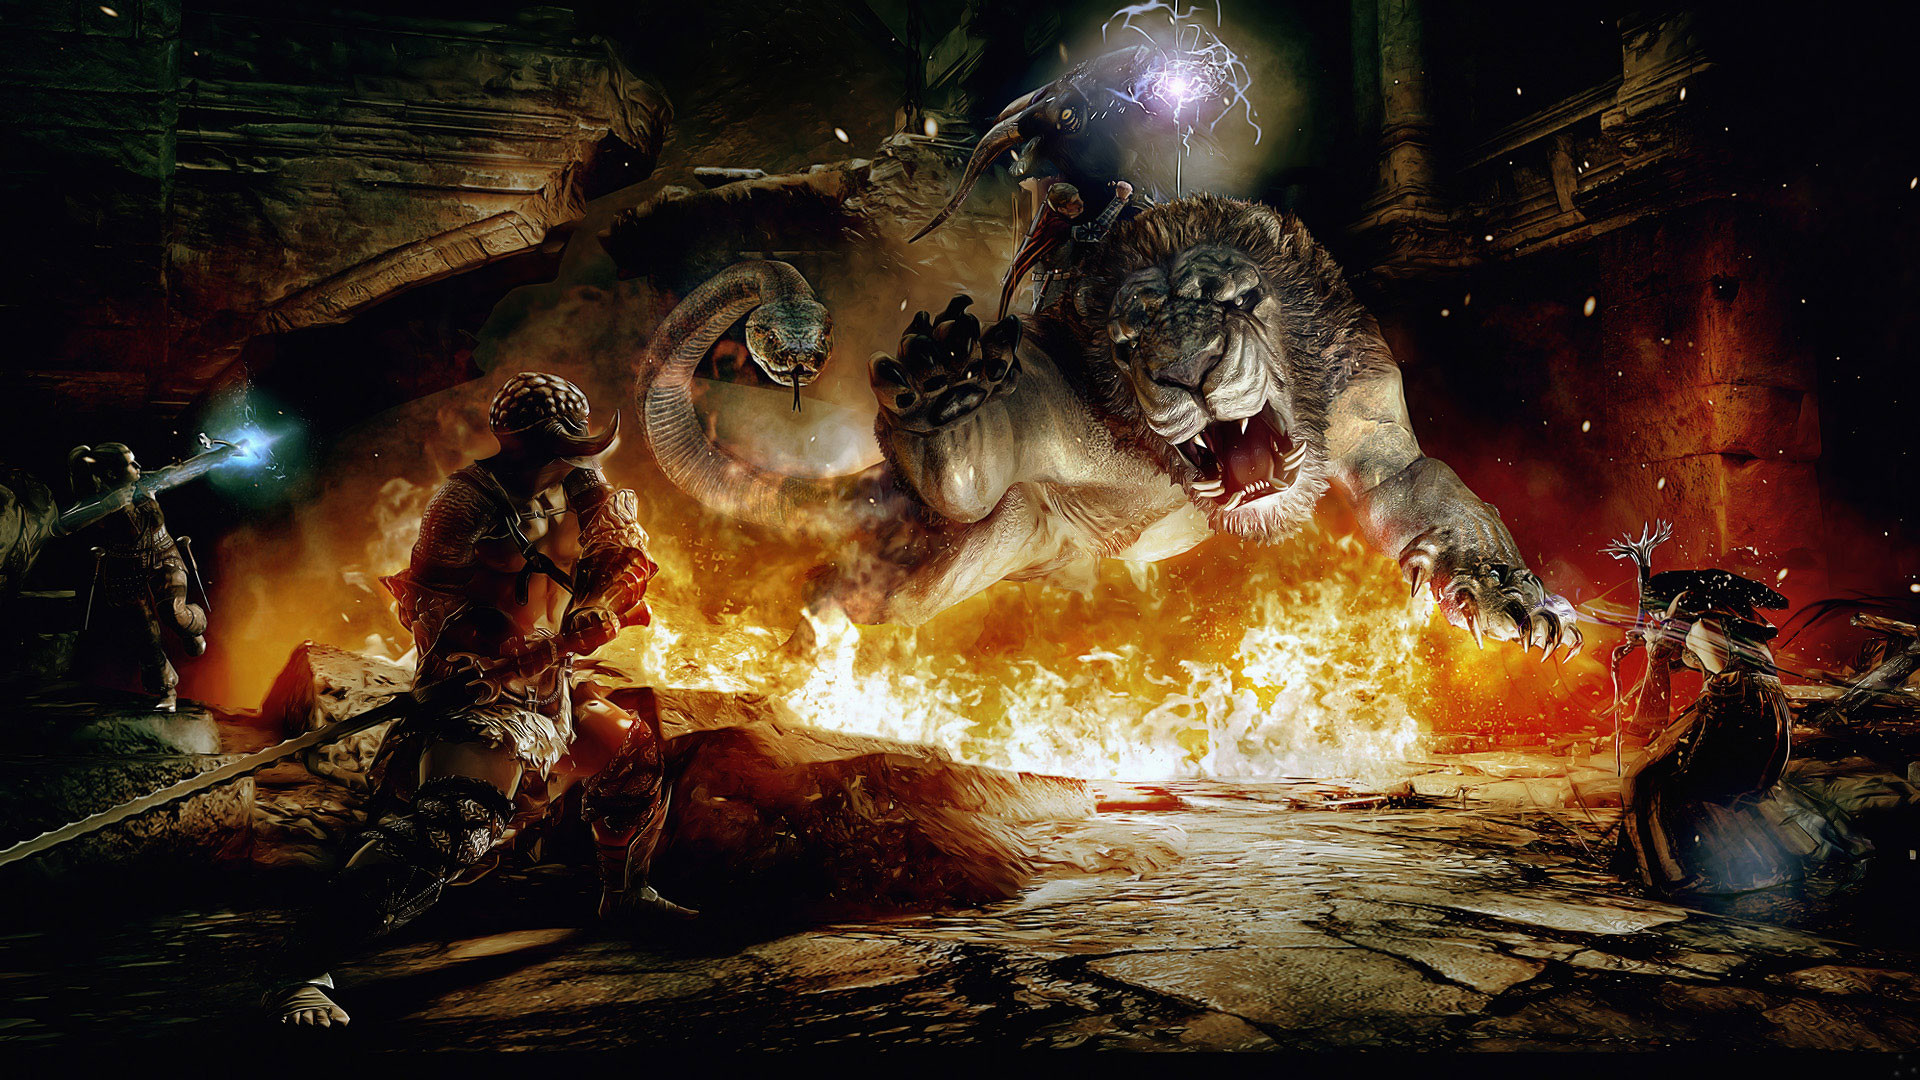 Dragon's Dogma Wallpapers in HD | Page 3